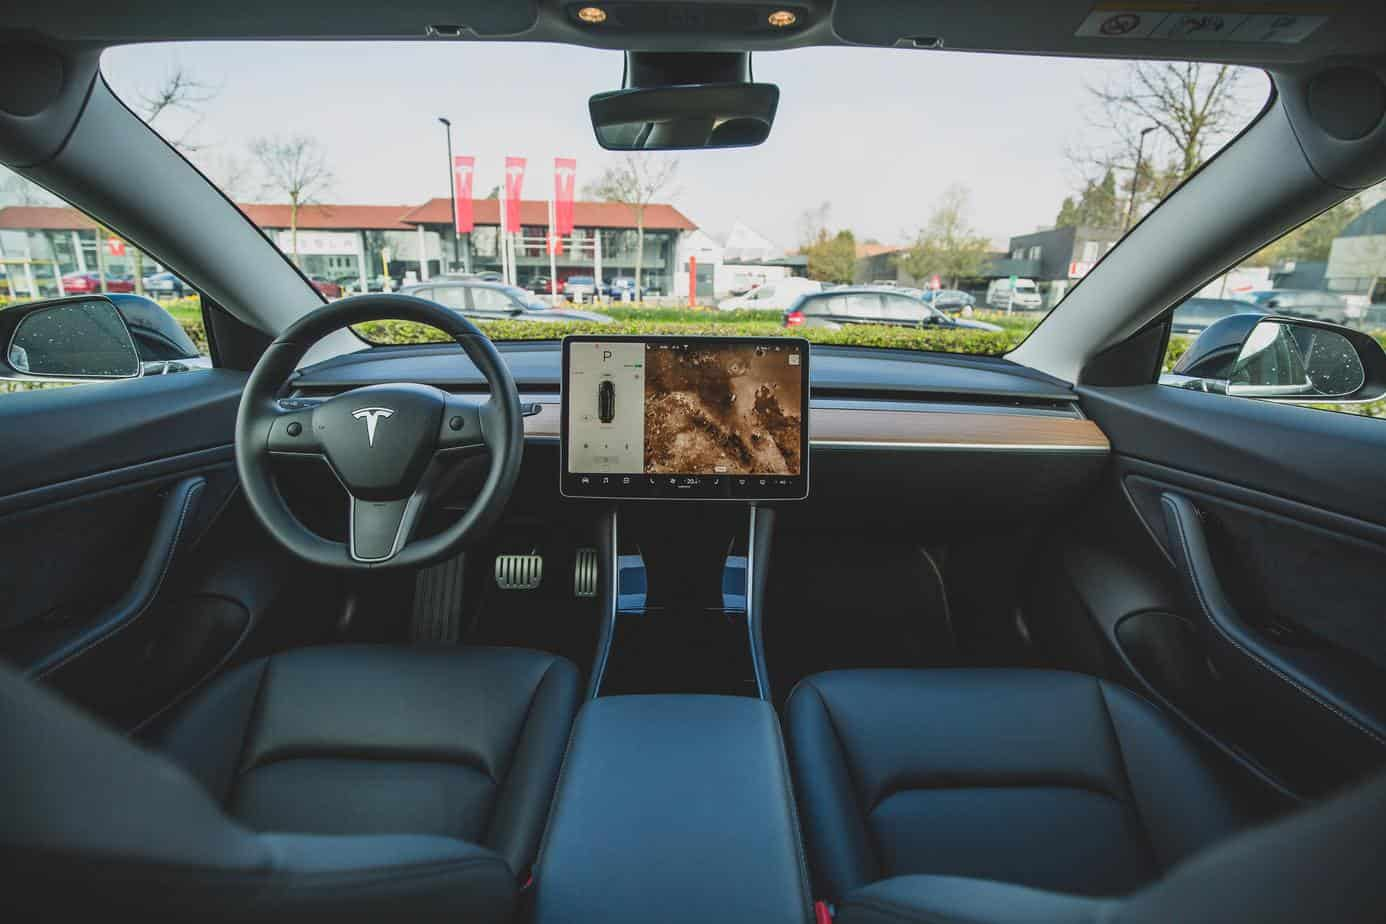 Full Self Driving Subscription: Tesla Wants Customers To Pay $199 Monthly